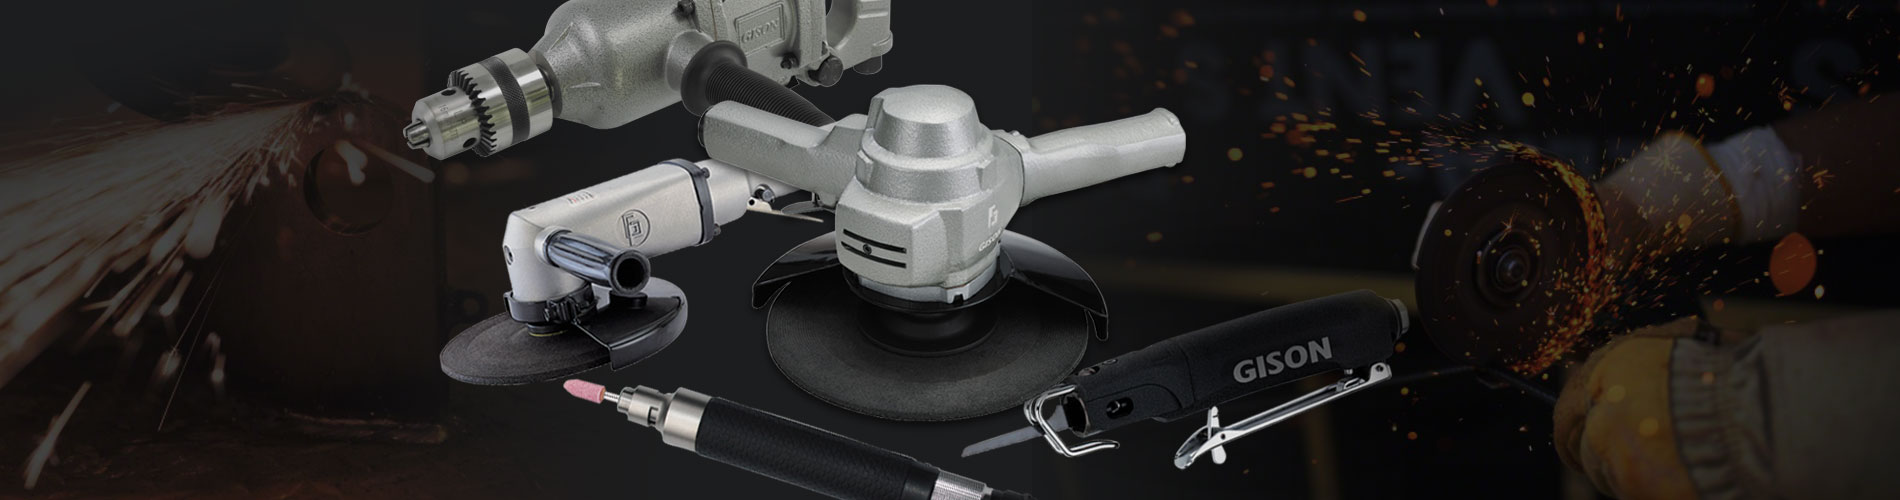 Air Tools for Grinding / Cutting / Drilling